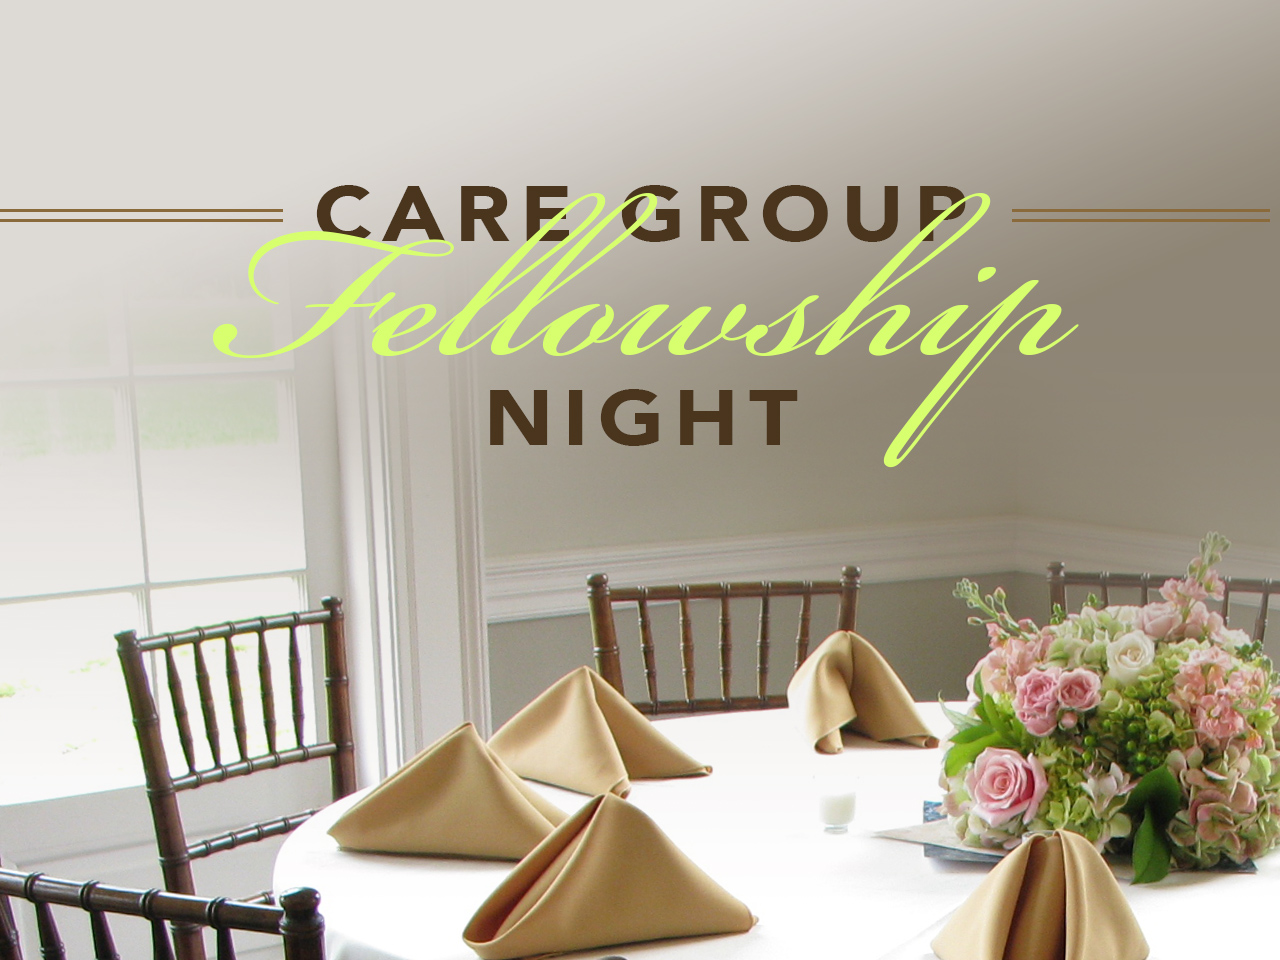 Care Group Fellowship Night